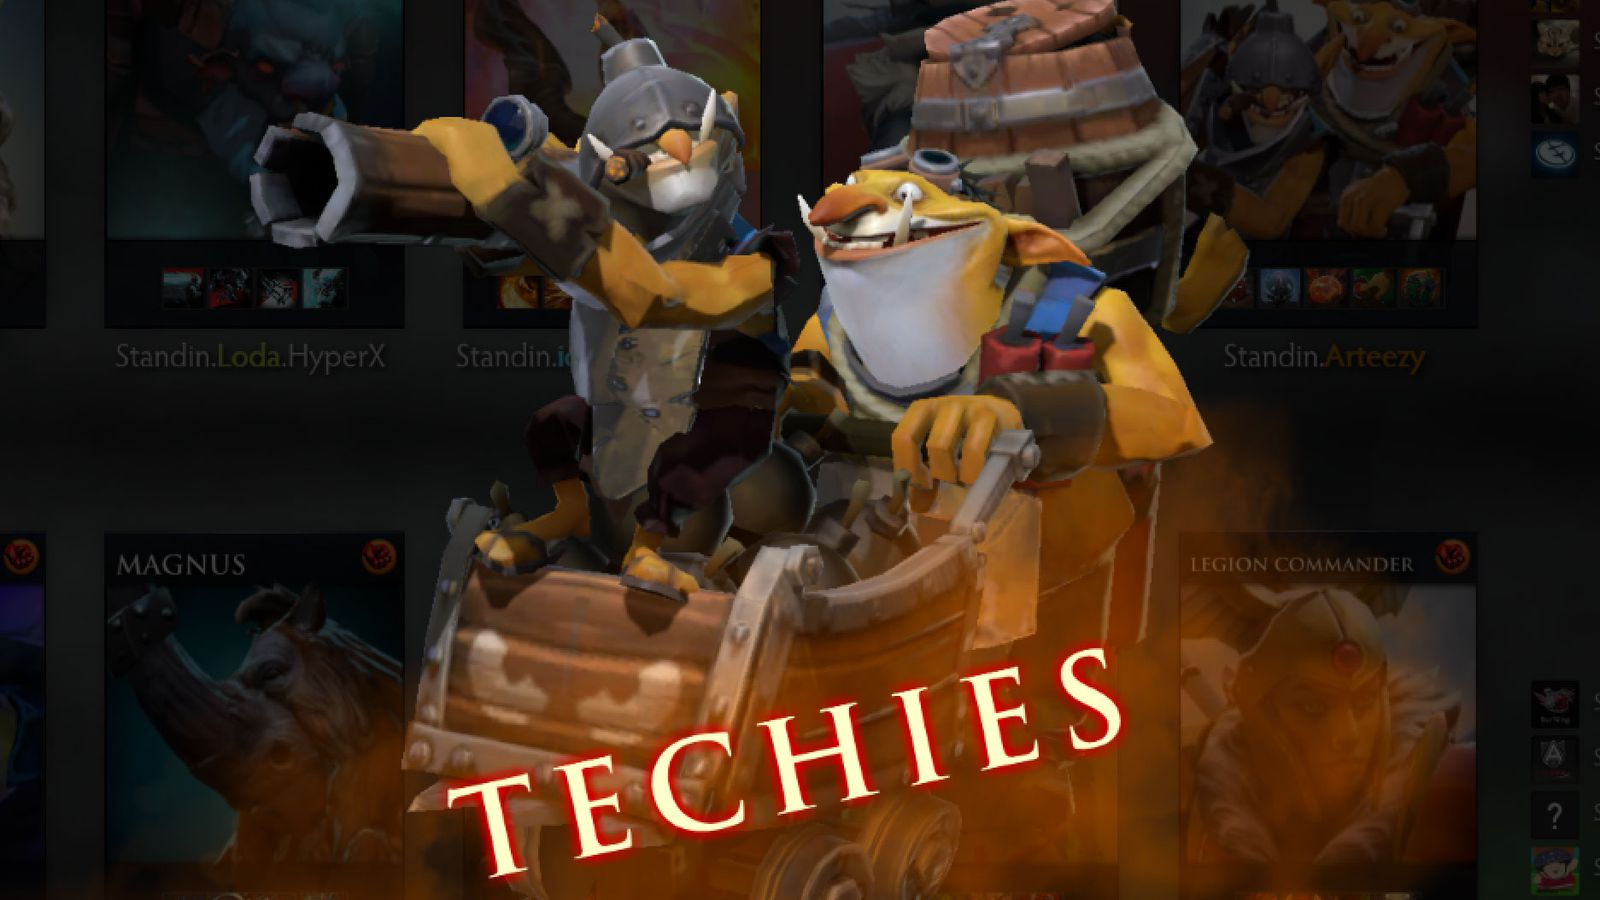 Theyre Here 10 Infuriating Minutes With Dota 2s New Character Techies Polygon